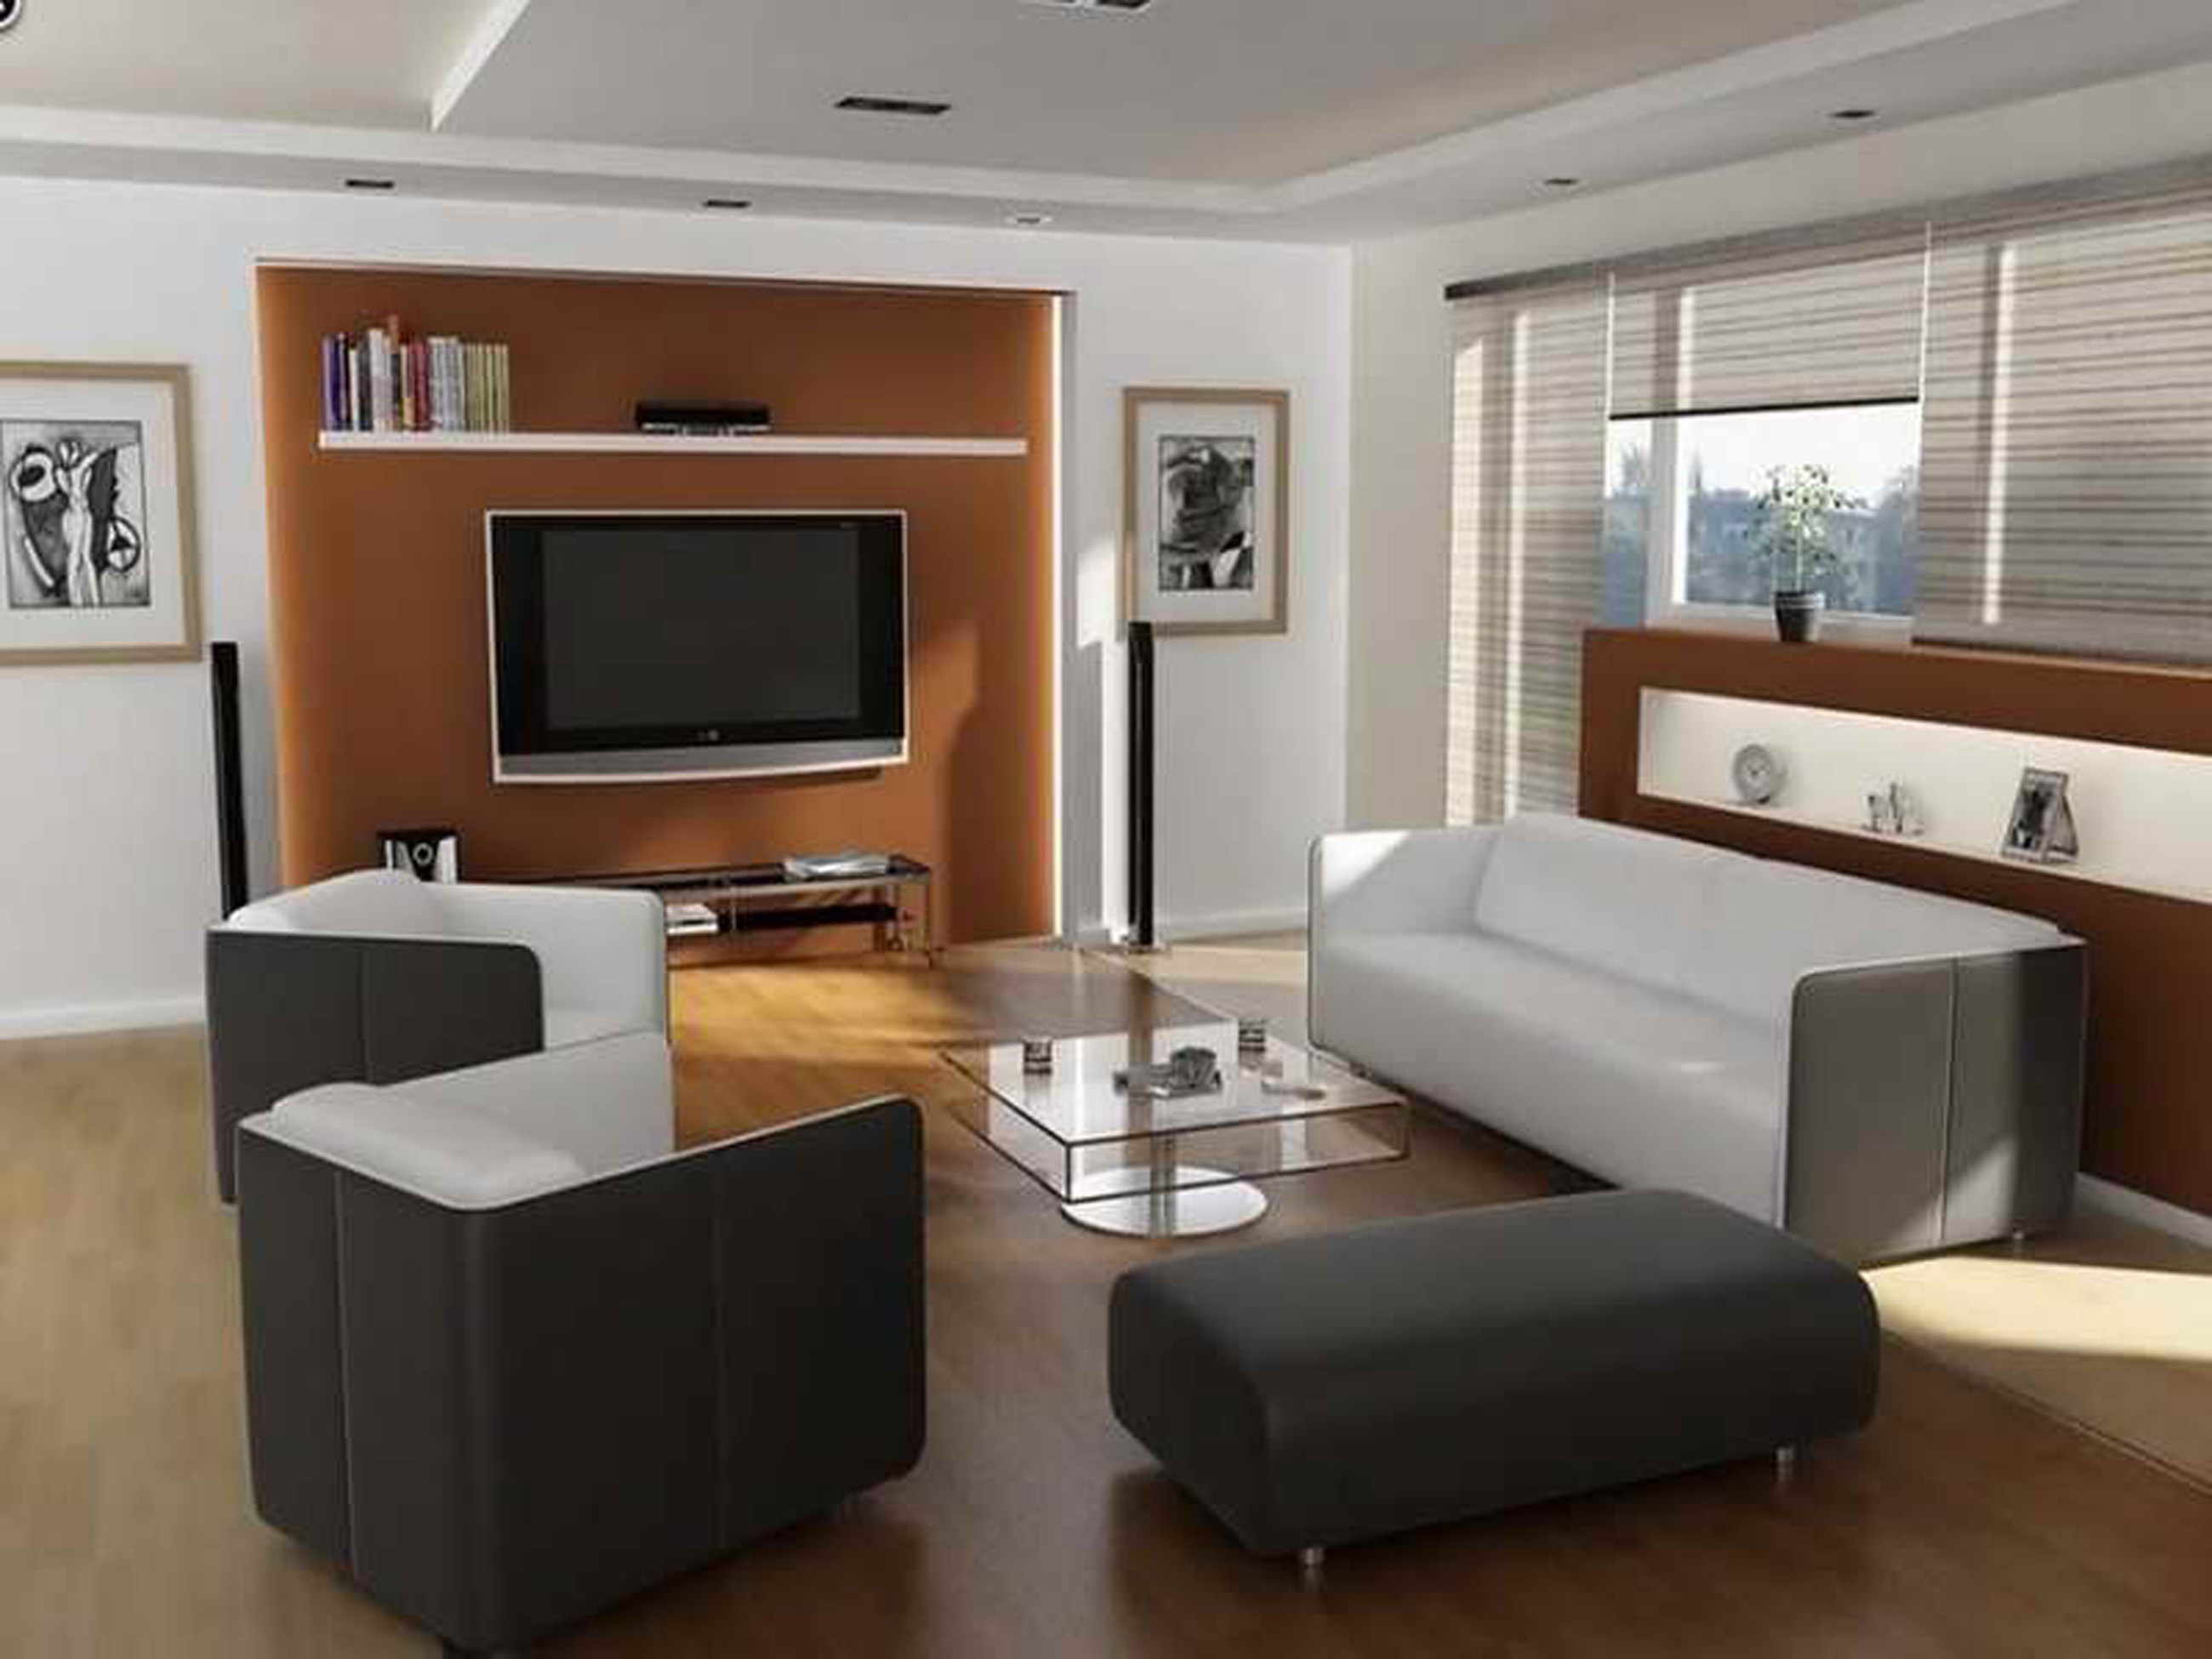 Apartments Decor Of Simple Design Ideas With Modern Sofa With Wood Cabinet (Image 22 of 45)